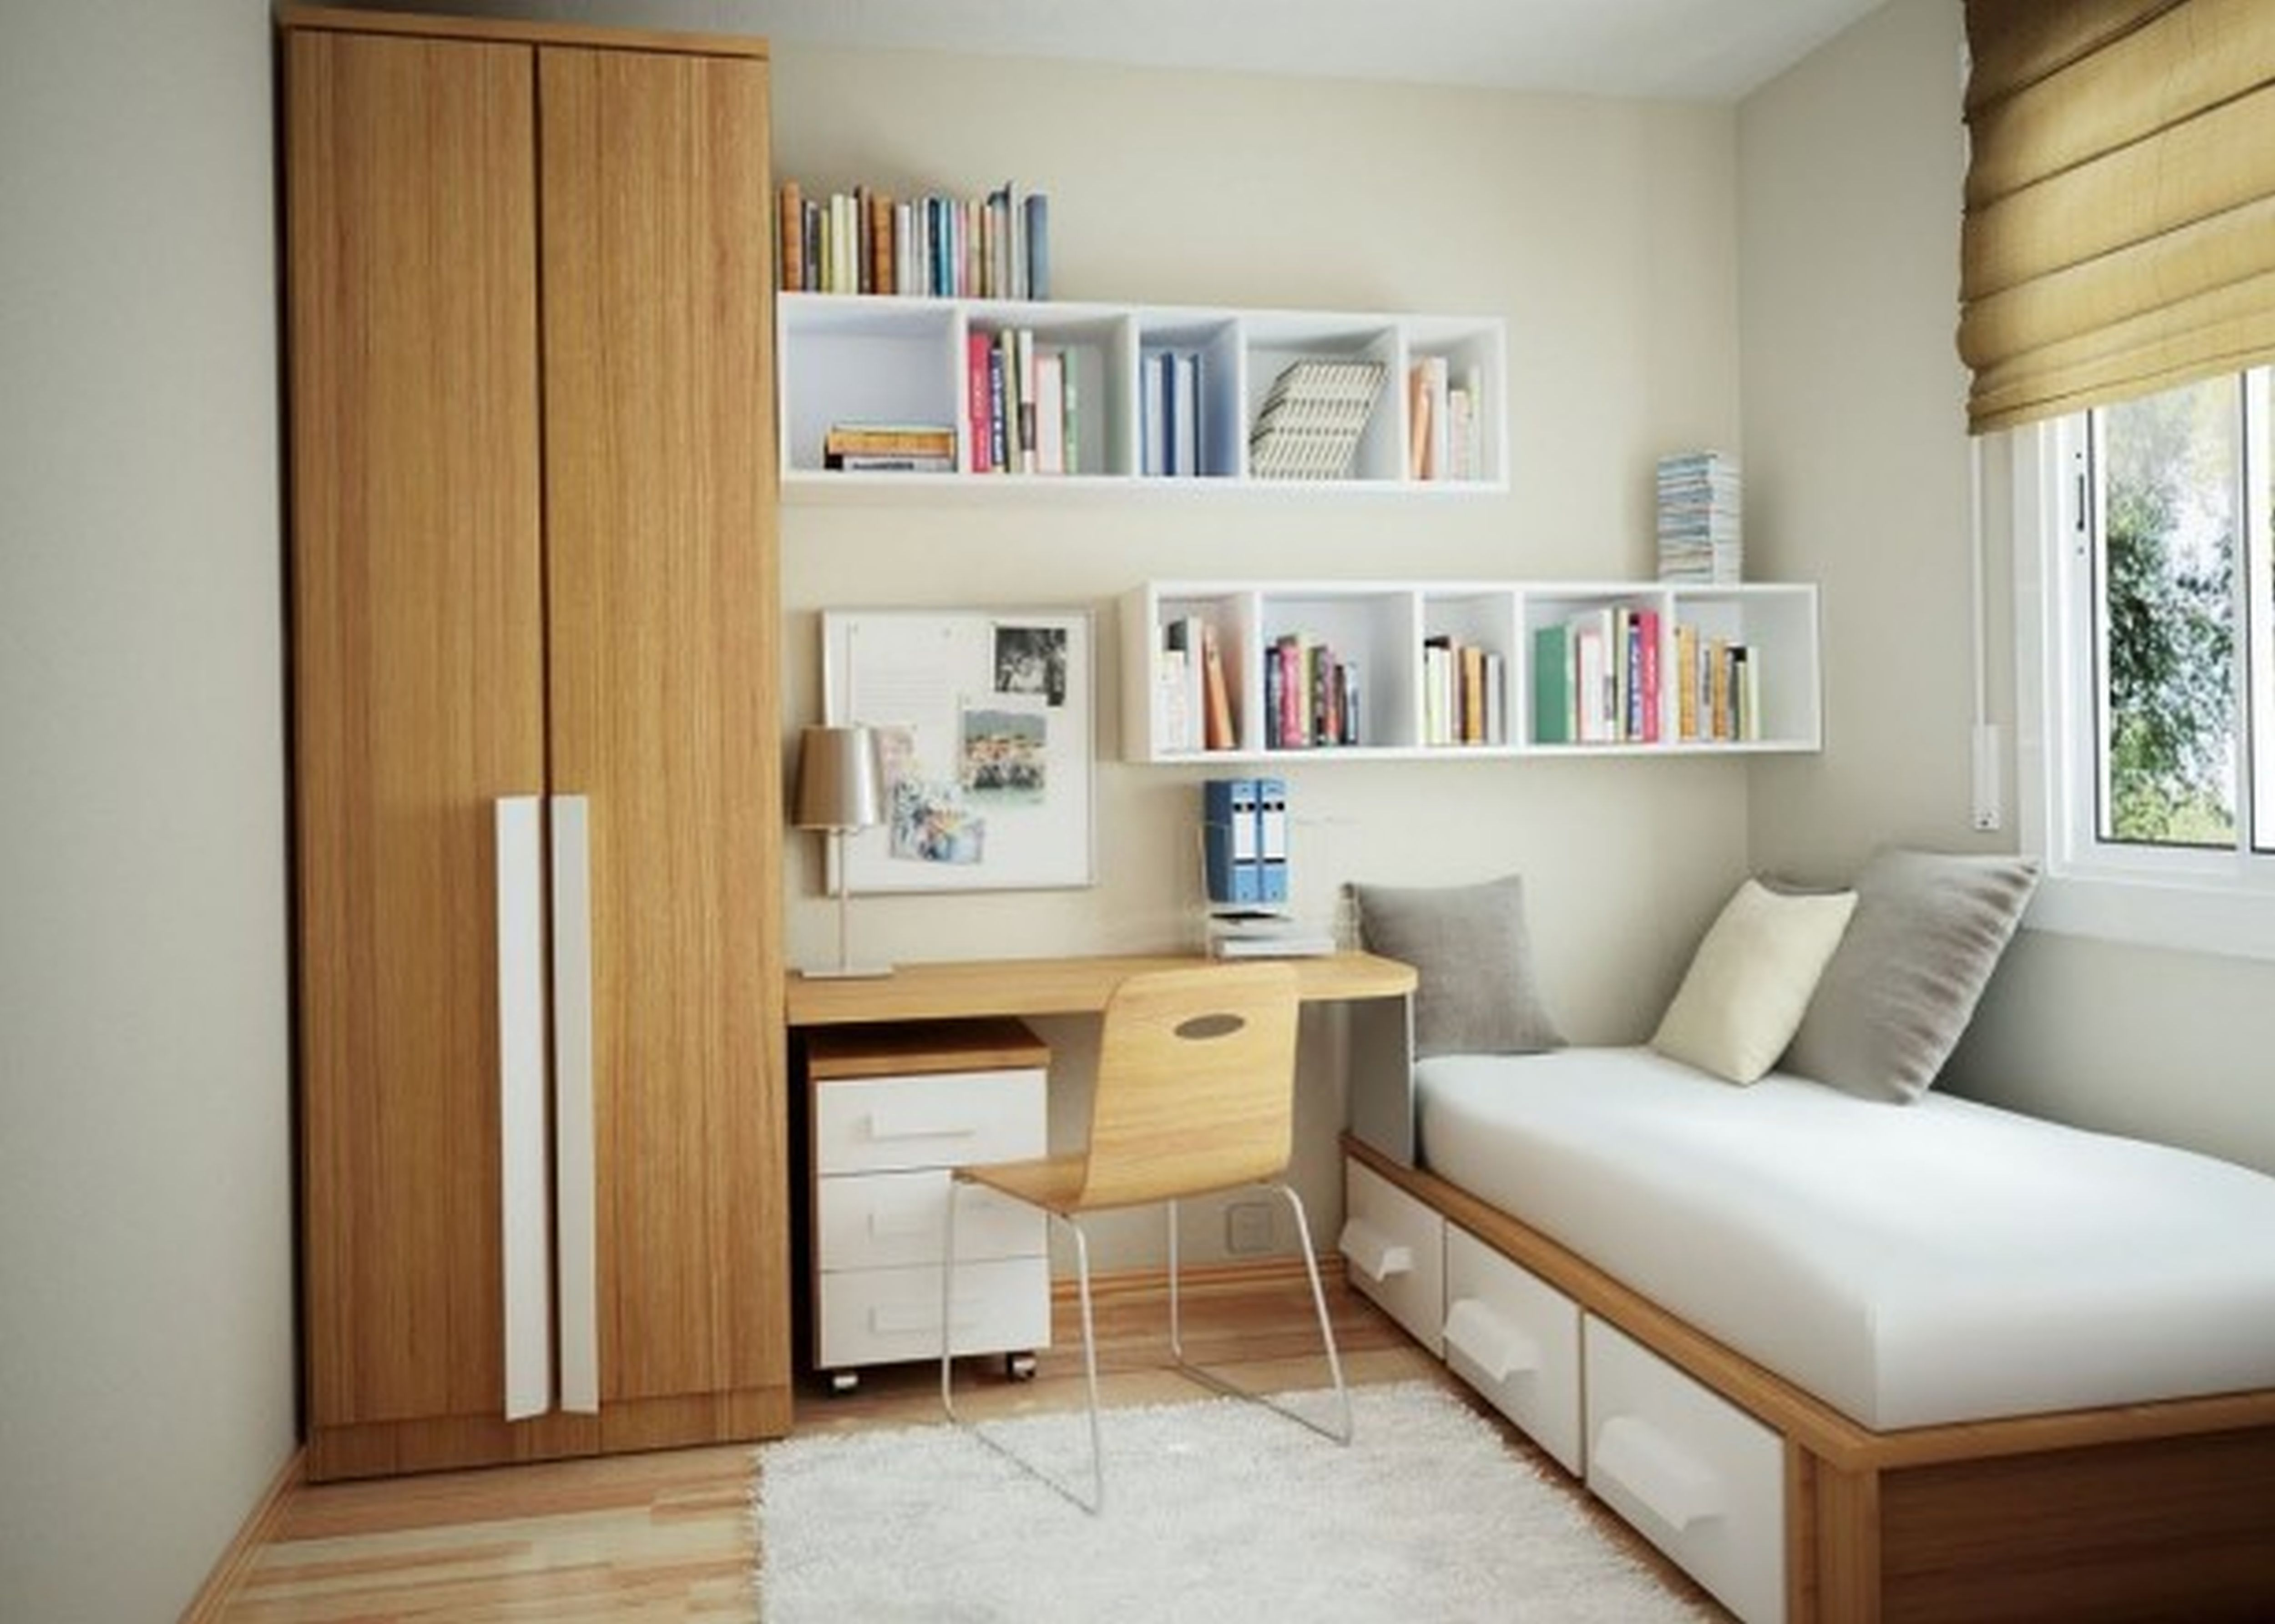 bedroom exciting murphy bed ikea with mid century wall shelves and swivel traditional design cozy berber carpet plus wood desk 4